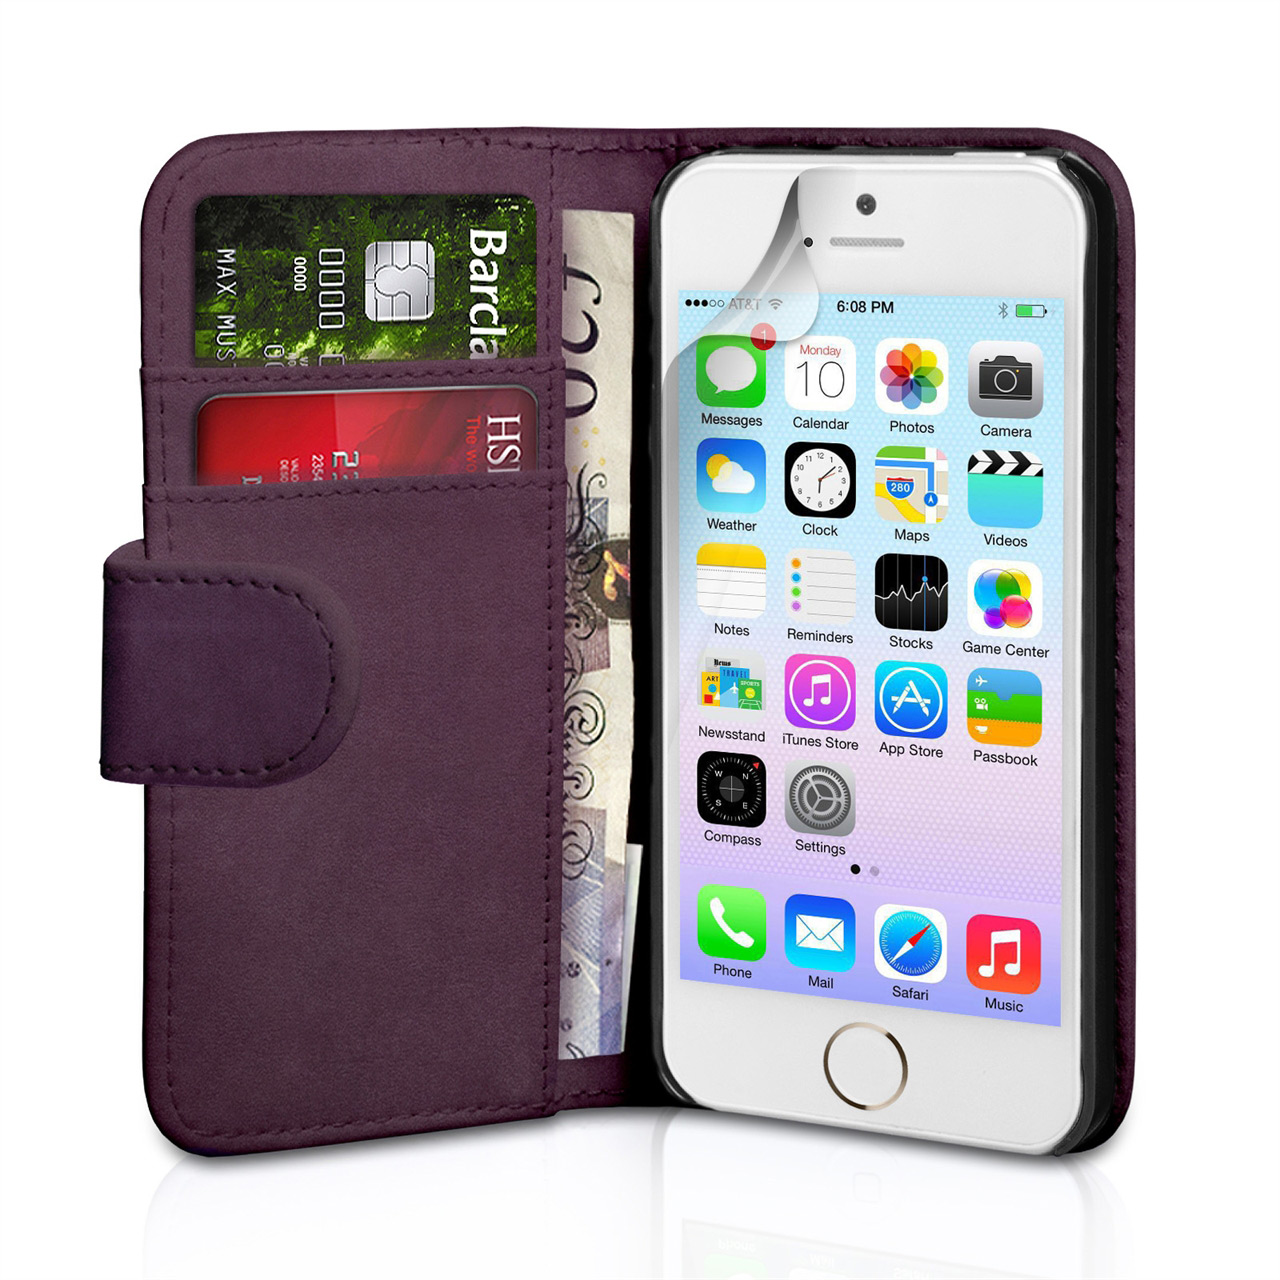 YouSave Accessories iPhone 5 / 5S Leather Effect Wallet Case - Purple